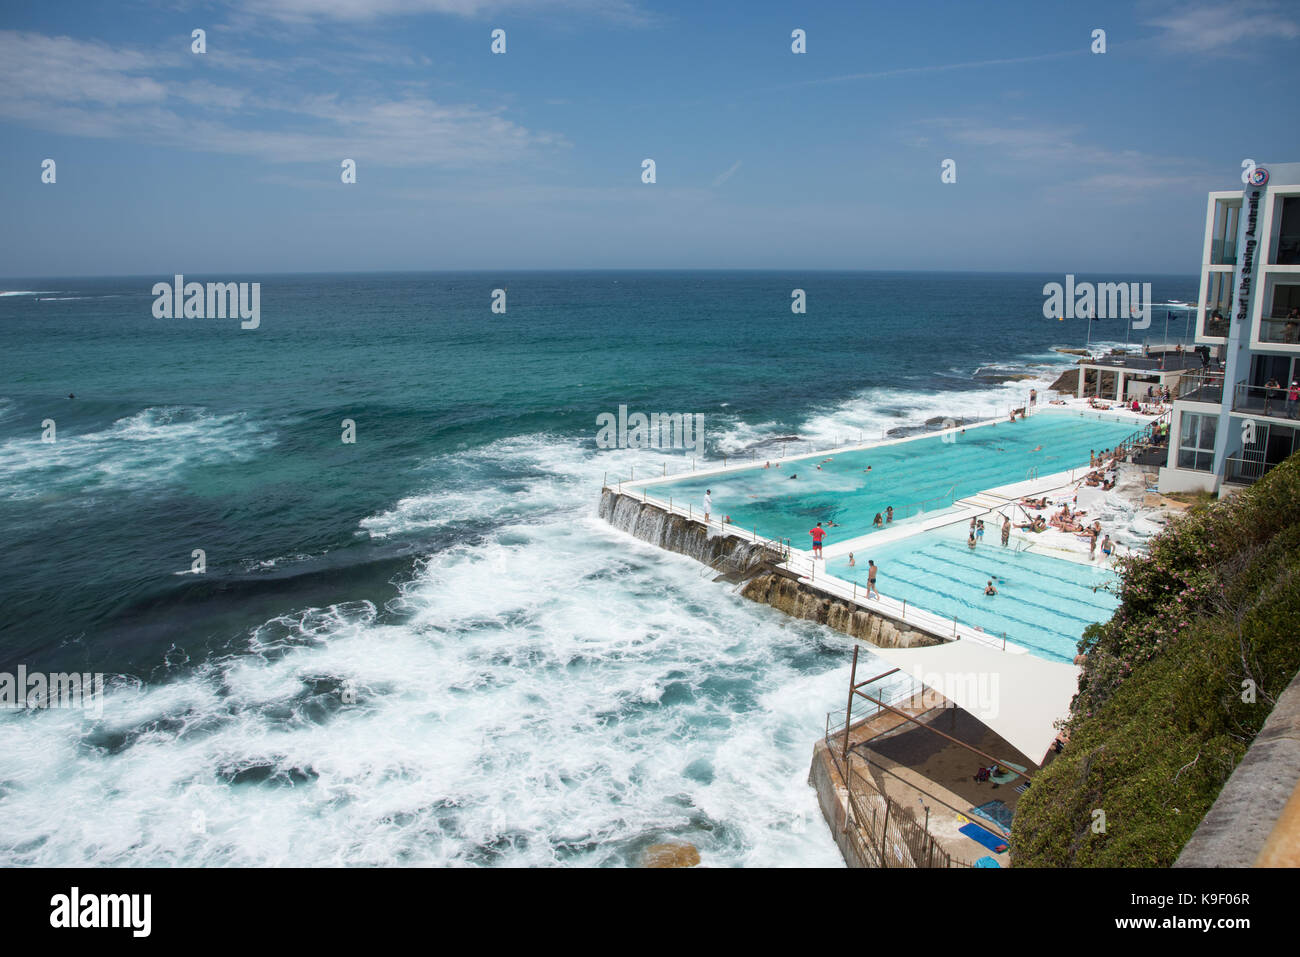 Bondi icebergs club stock photos bondi icebergs club stock images alamy for Swimming pools central coast nsw